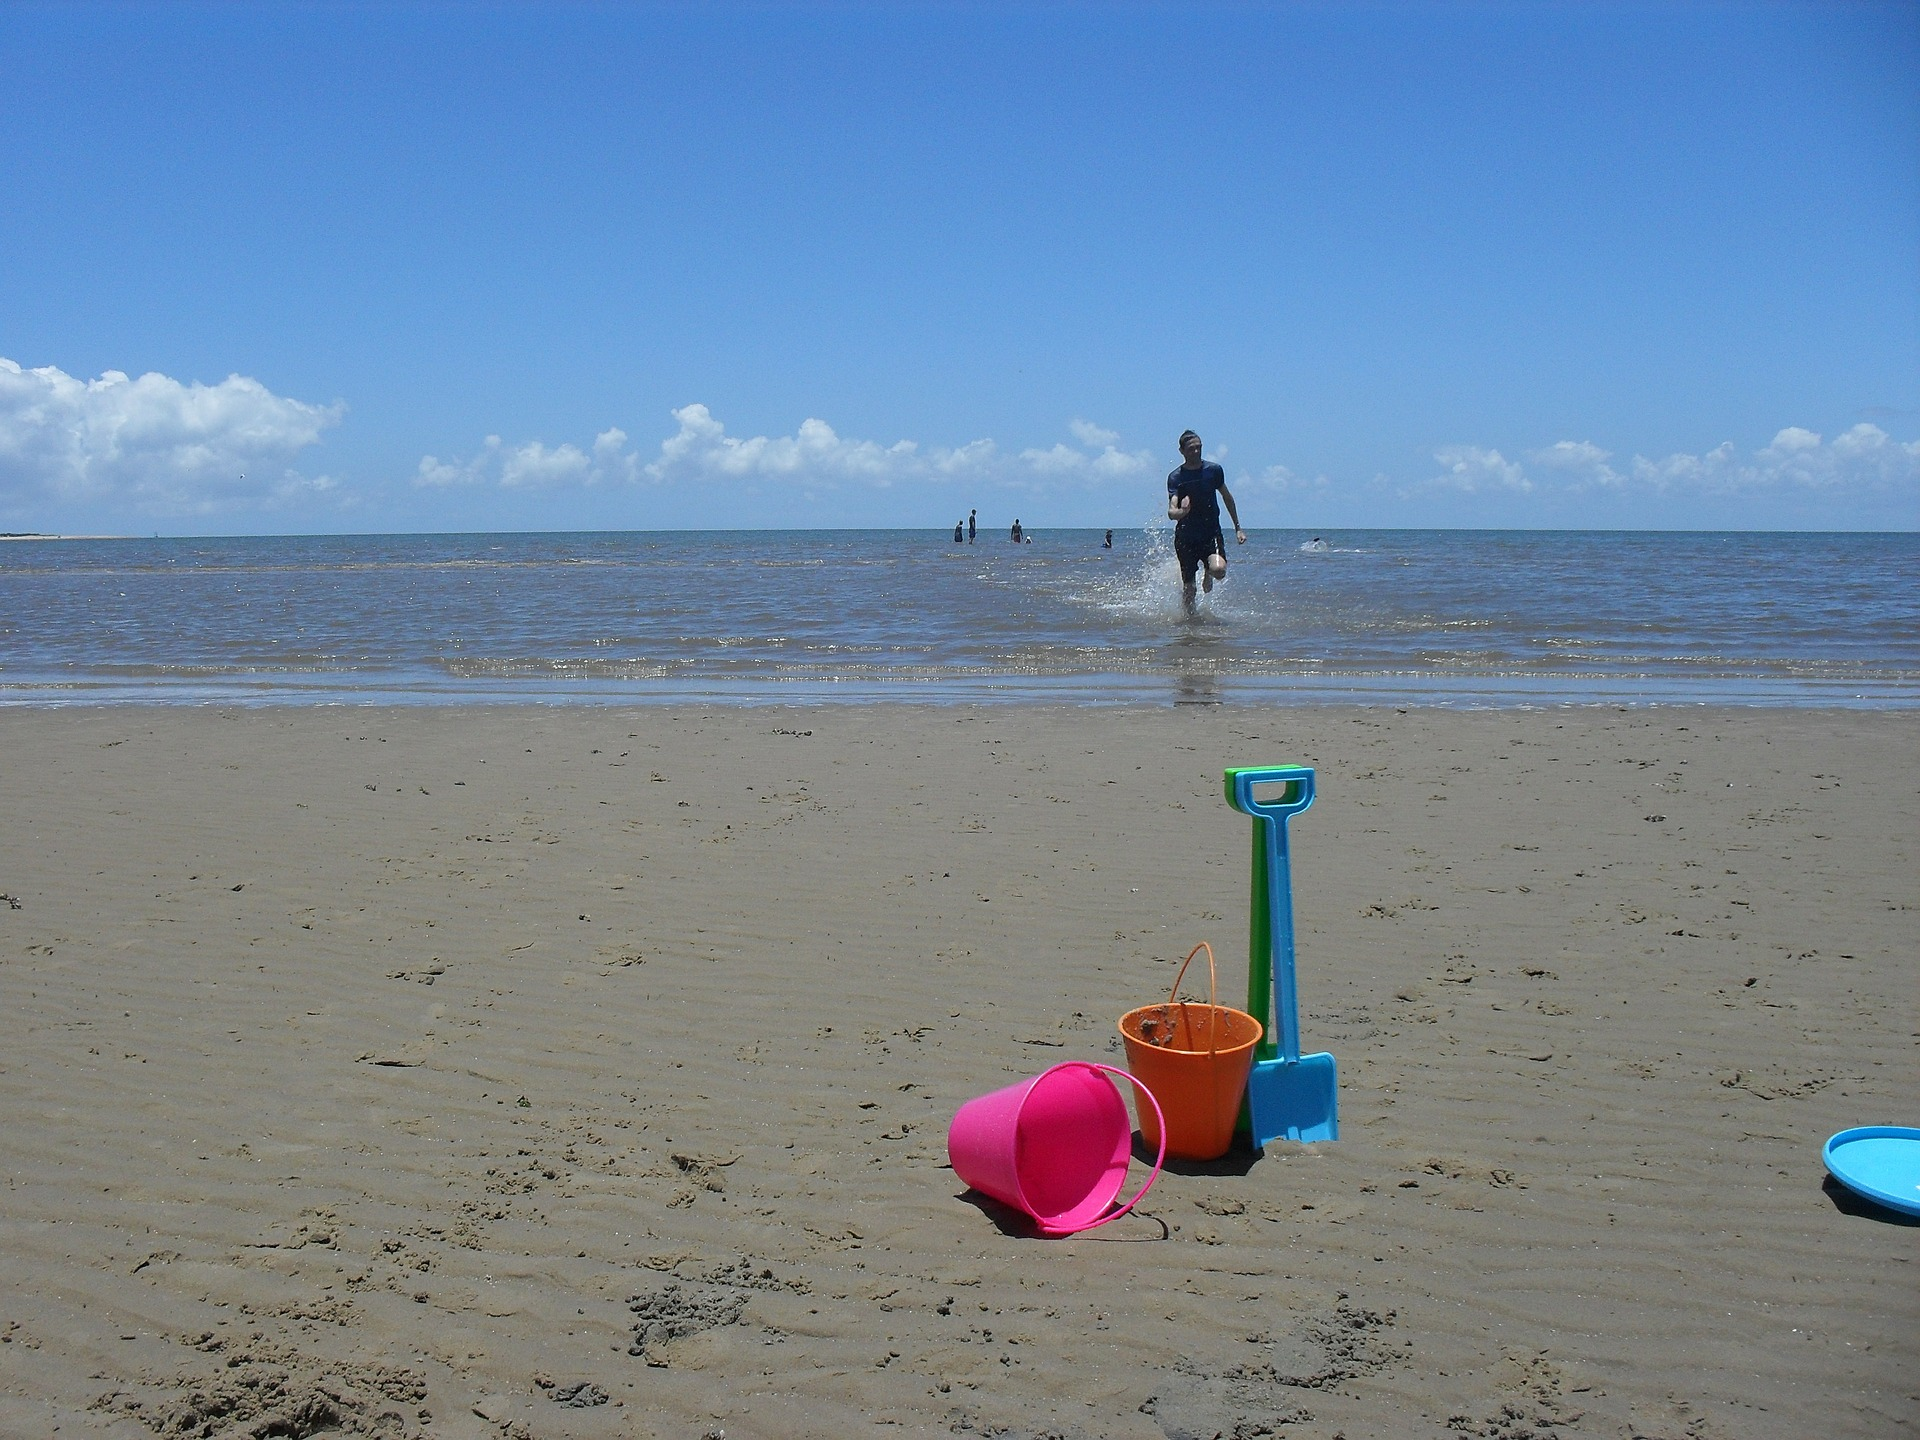 Buckets and spade on a beach with the sea in the background and a surfer running out the sea